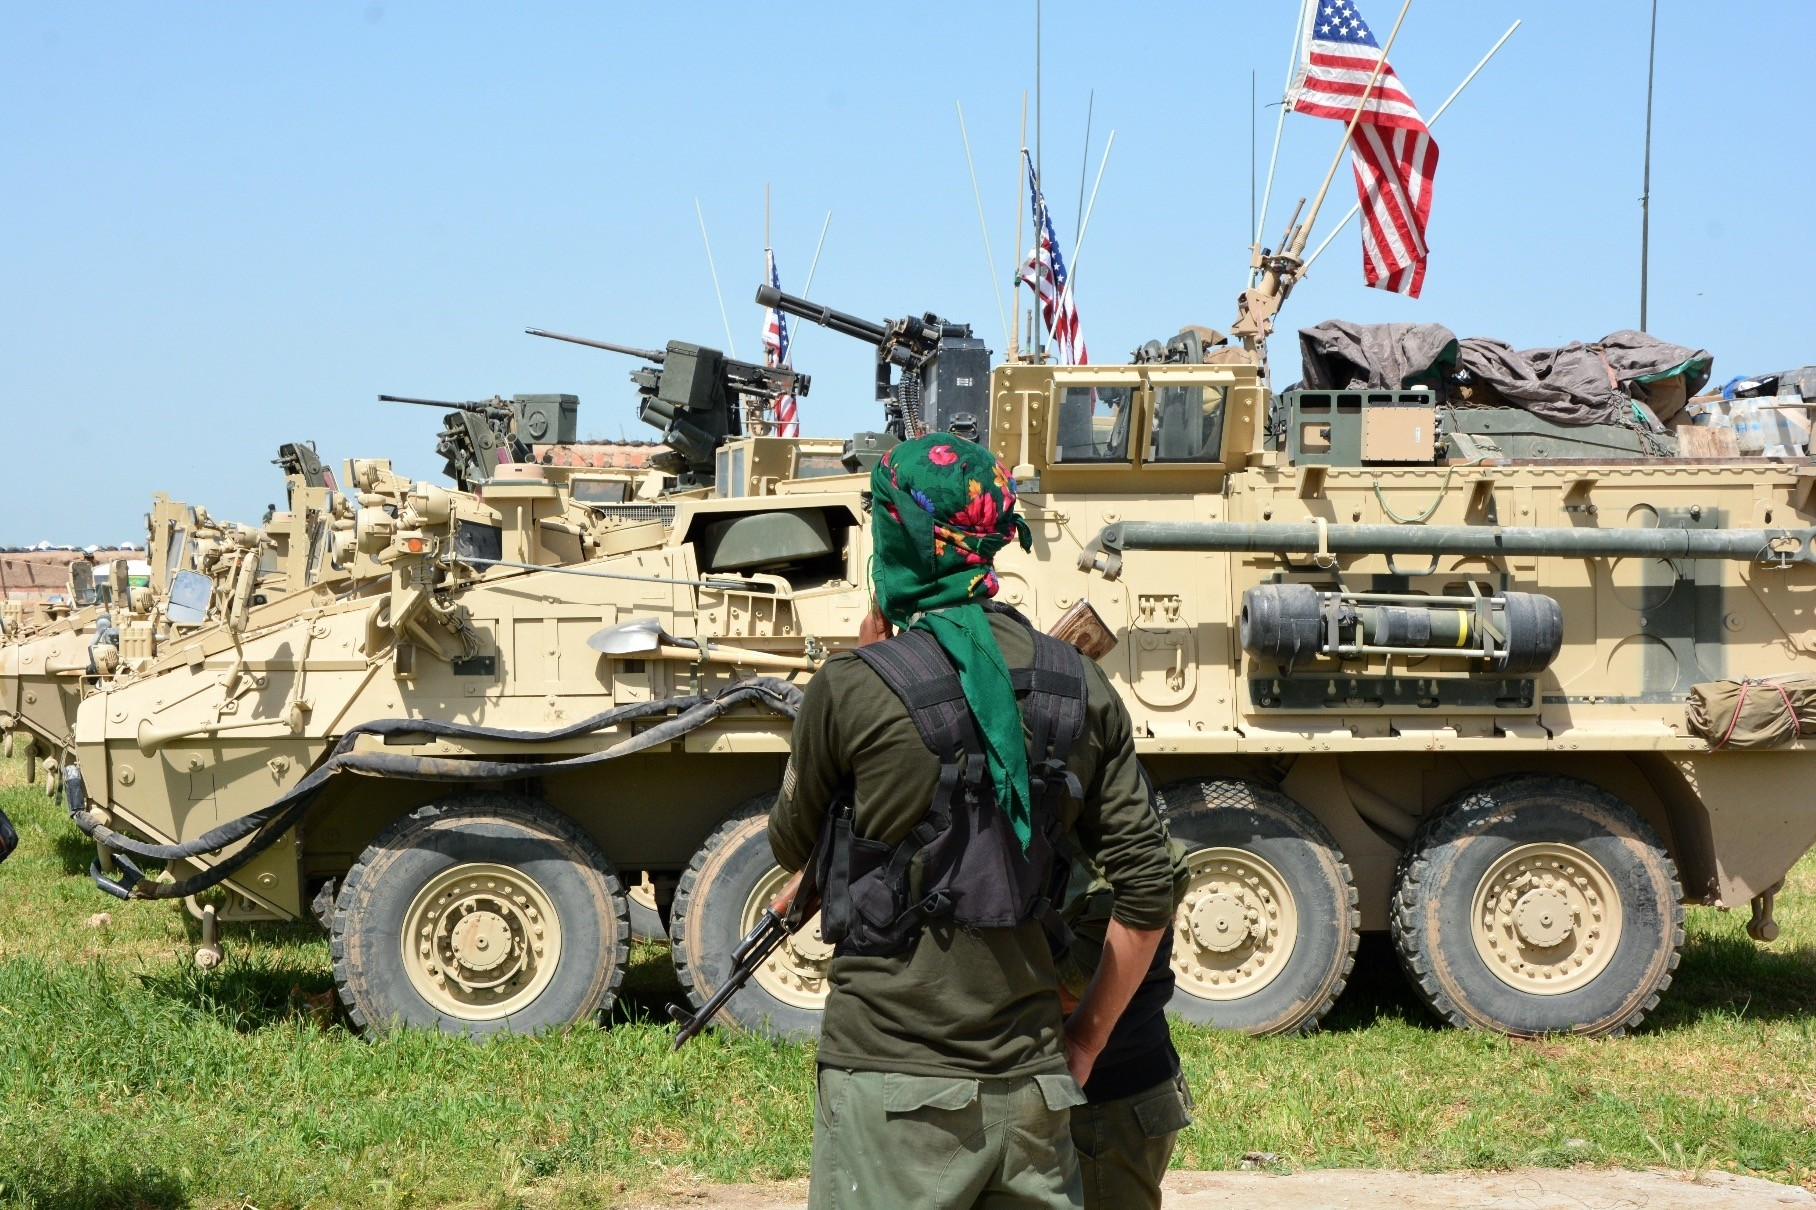 YPG terrorists stand next to U.S. armored vehicles in the town of al-Darbasiyah on the Syrian-Turkish border, April 29, 2017.